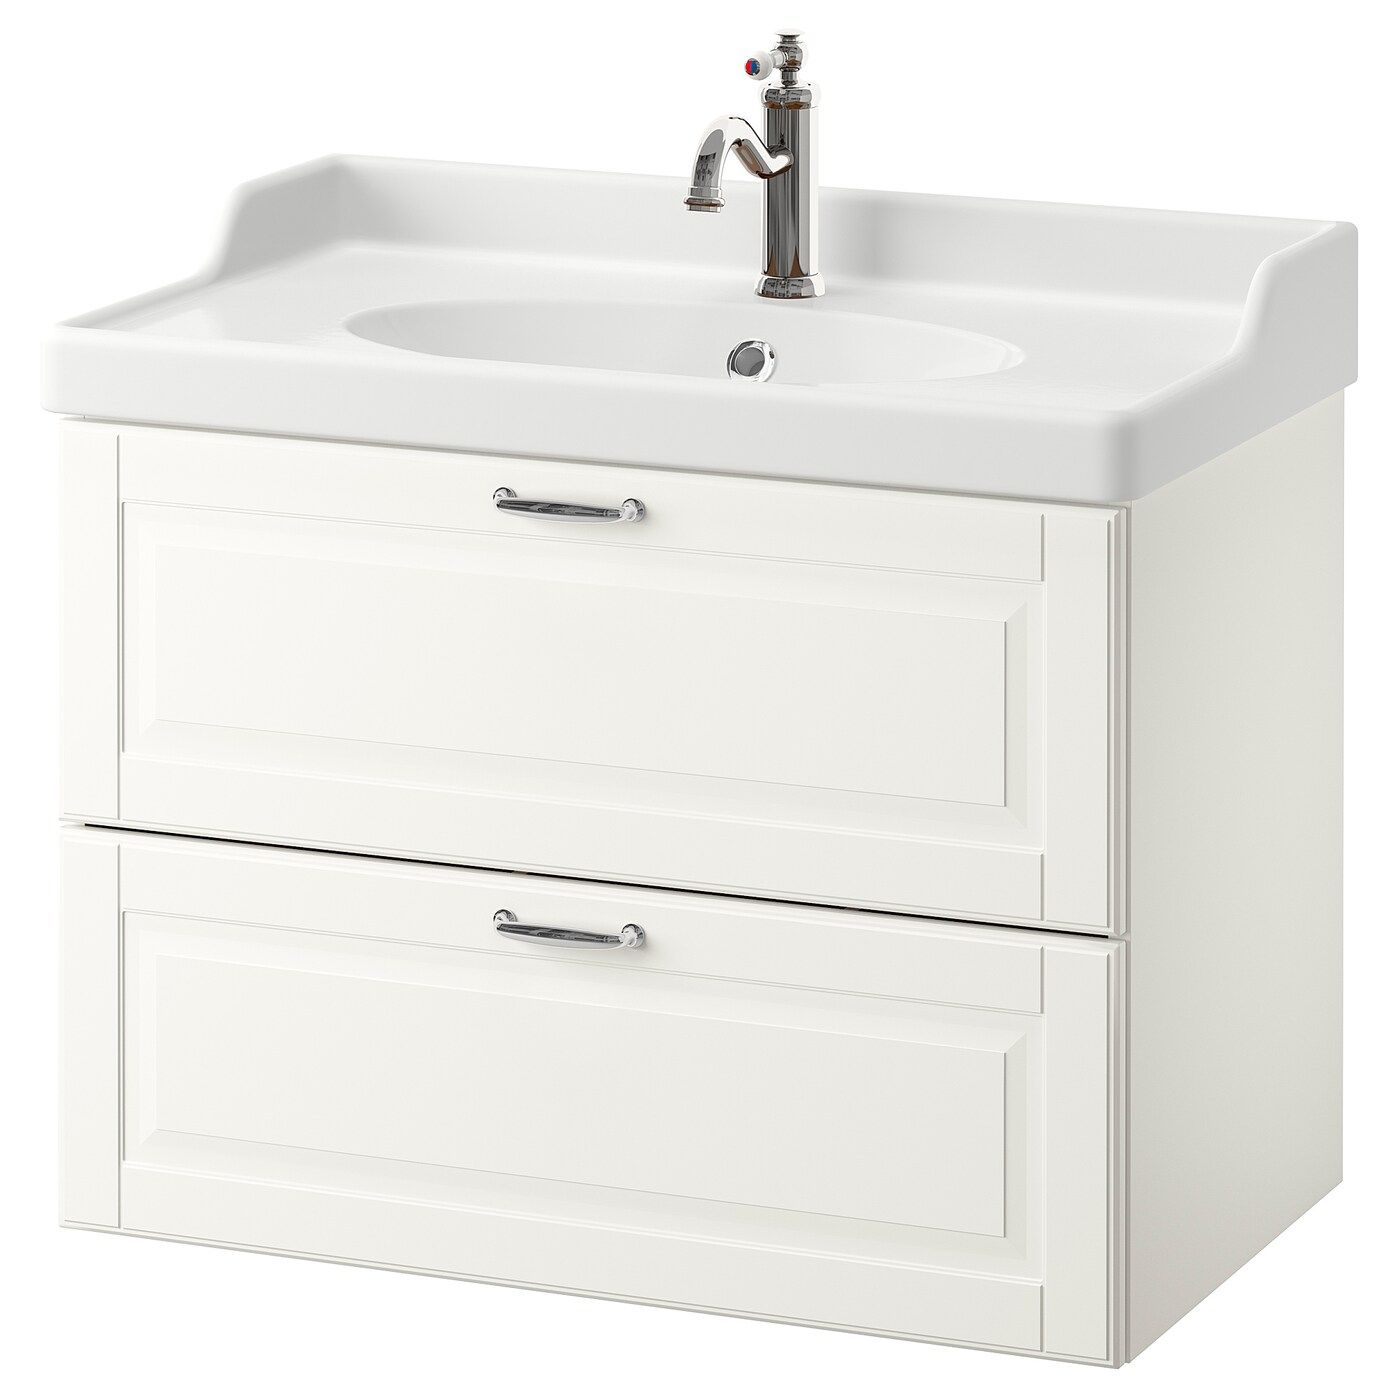 Ikea Godmorgon Rattviken Sink Cabinet With 2 Drawers In 2020 White Vanity Bathroom Home Depot Bathroom Vanity Bathroom Sink Vanity